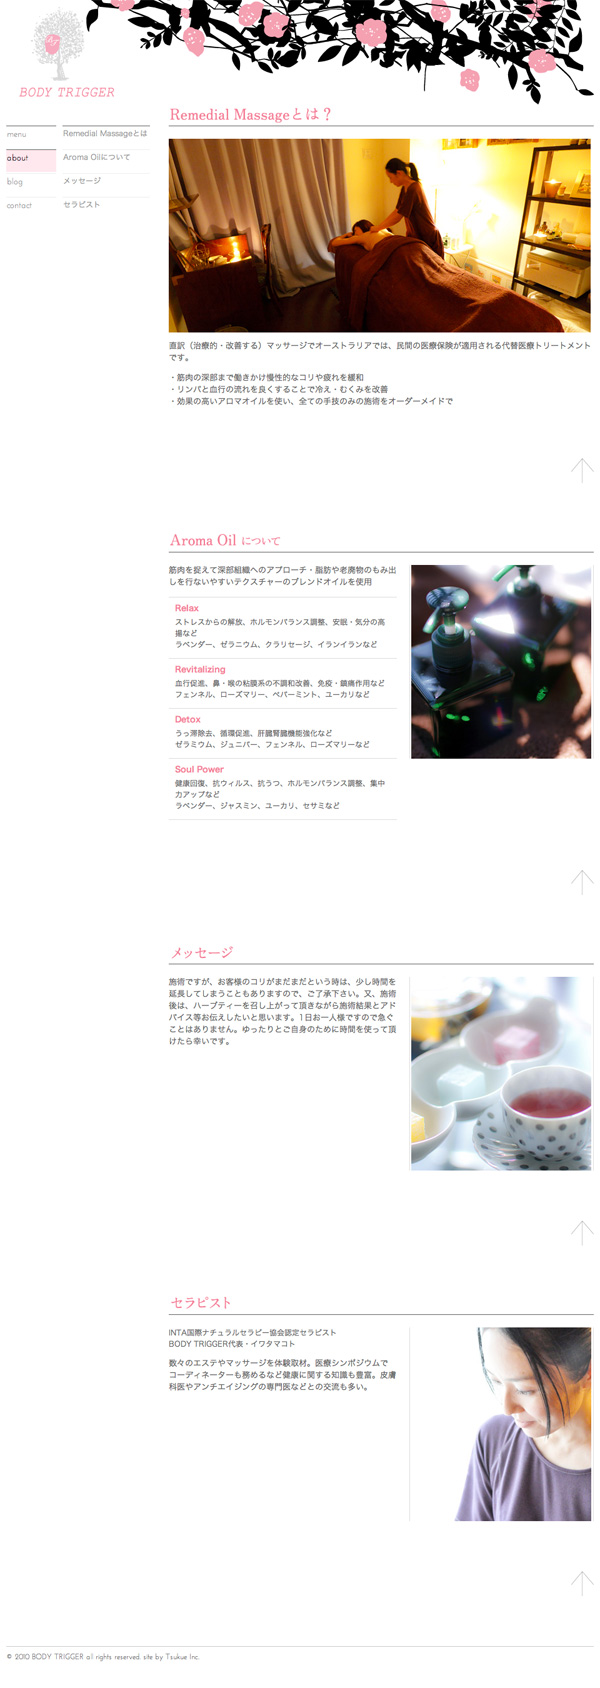 bodytrigger web02